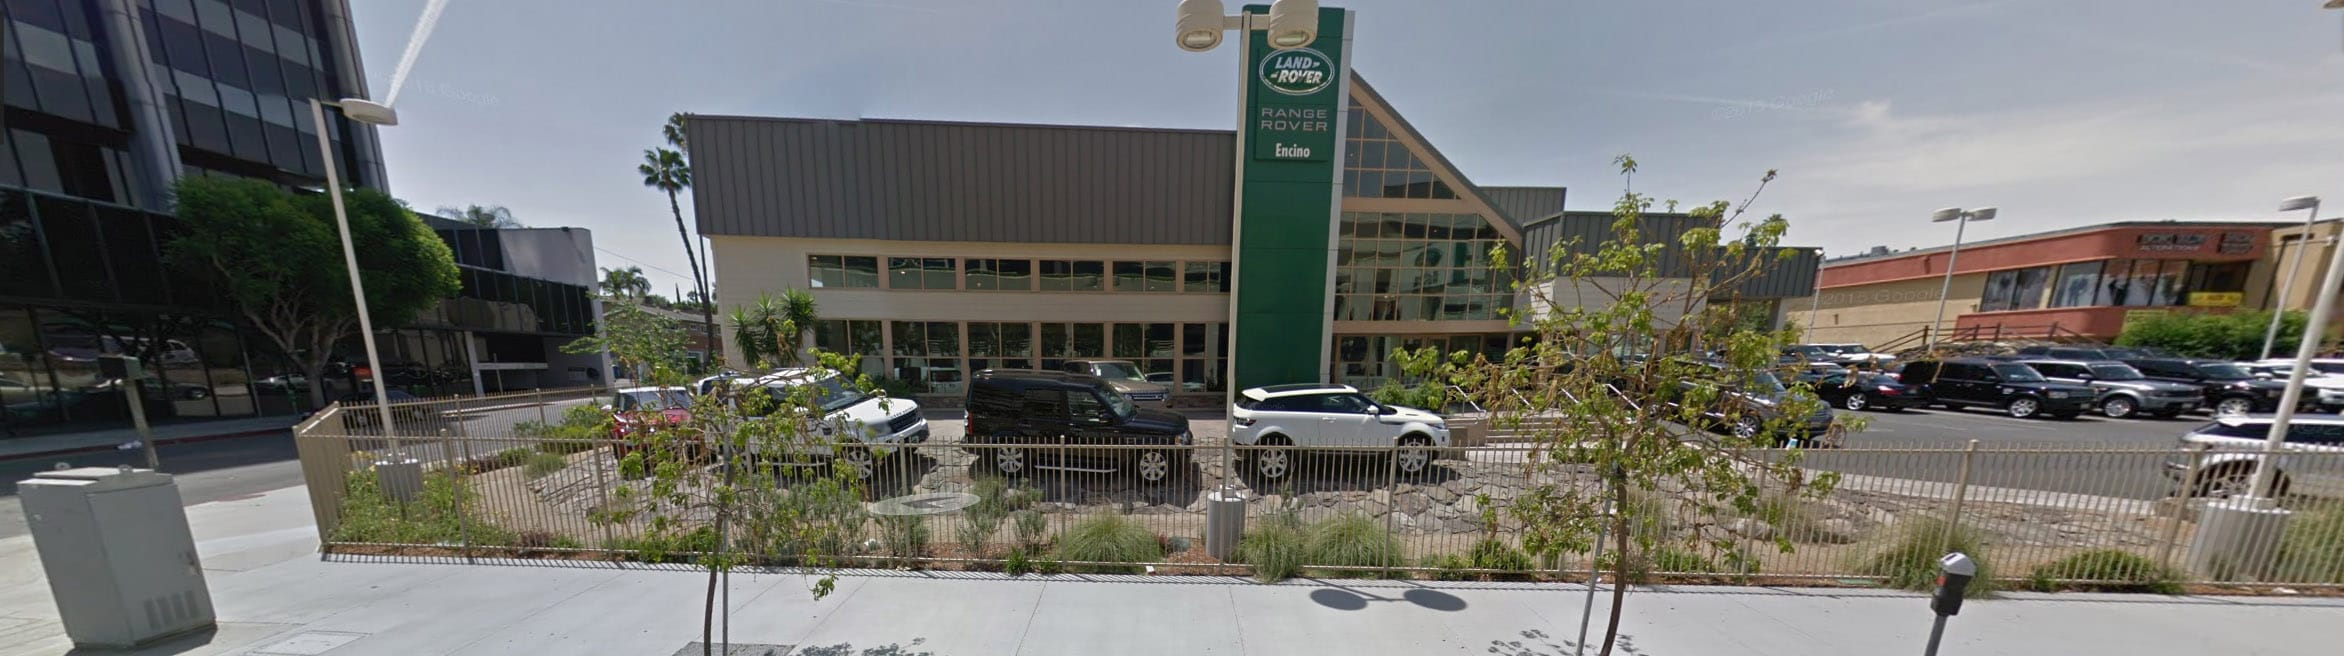 Contact Land Rover Dealership